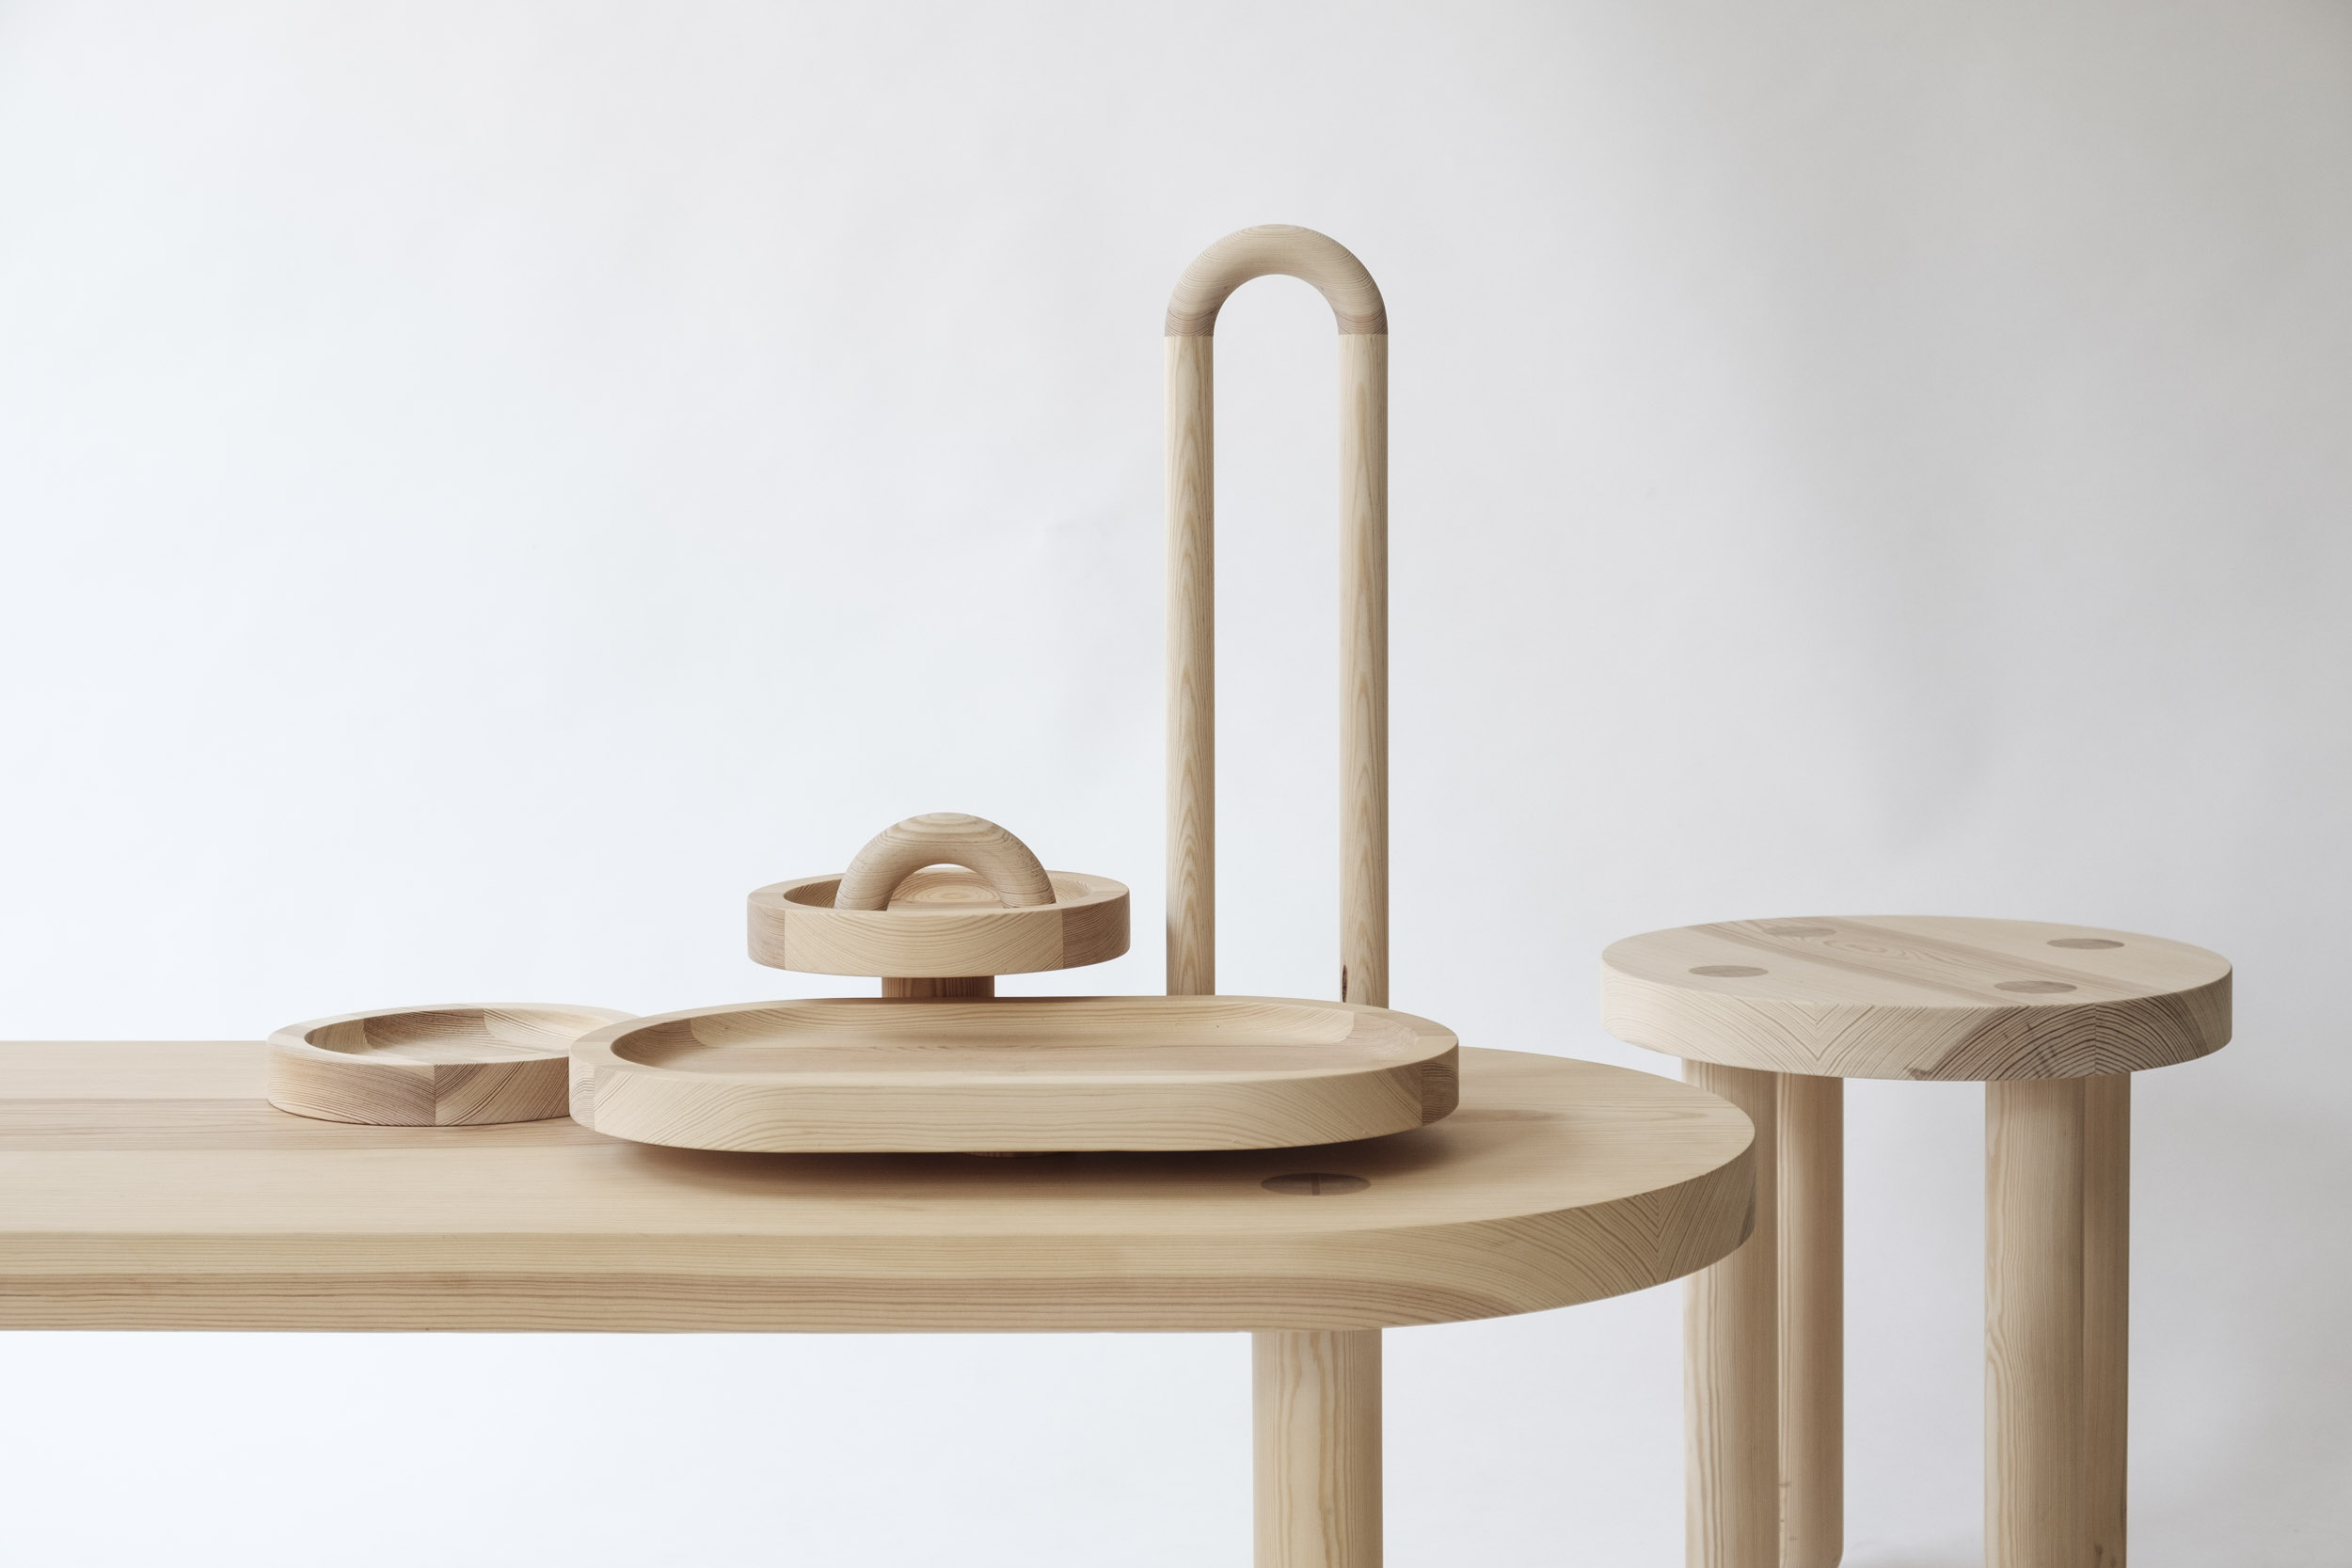 COFFEE TABLE MUTE MAGNETIC, integrated invisible magnets for placing different trays  SOLID WOOD, OILED  50 x 1200 x 45cm